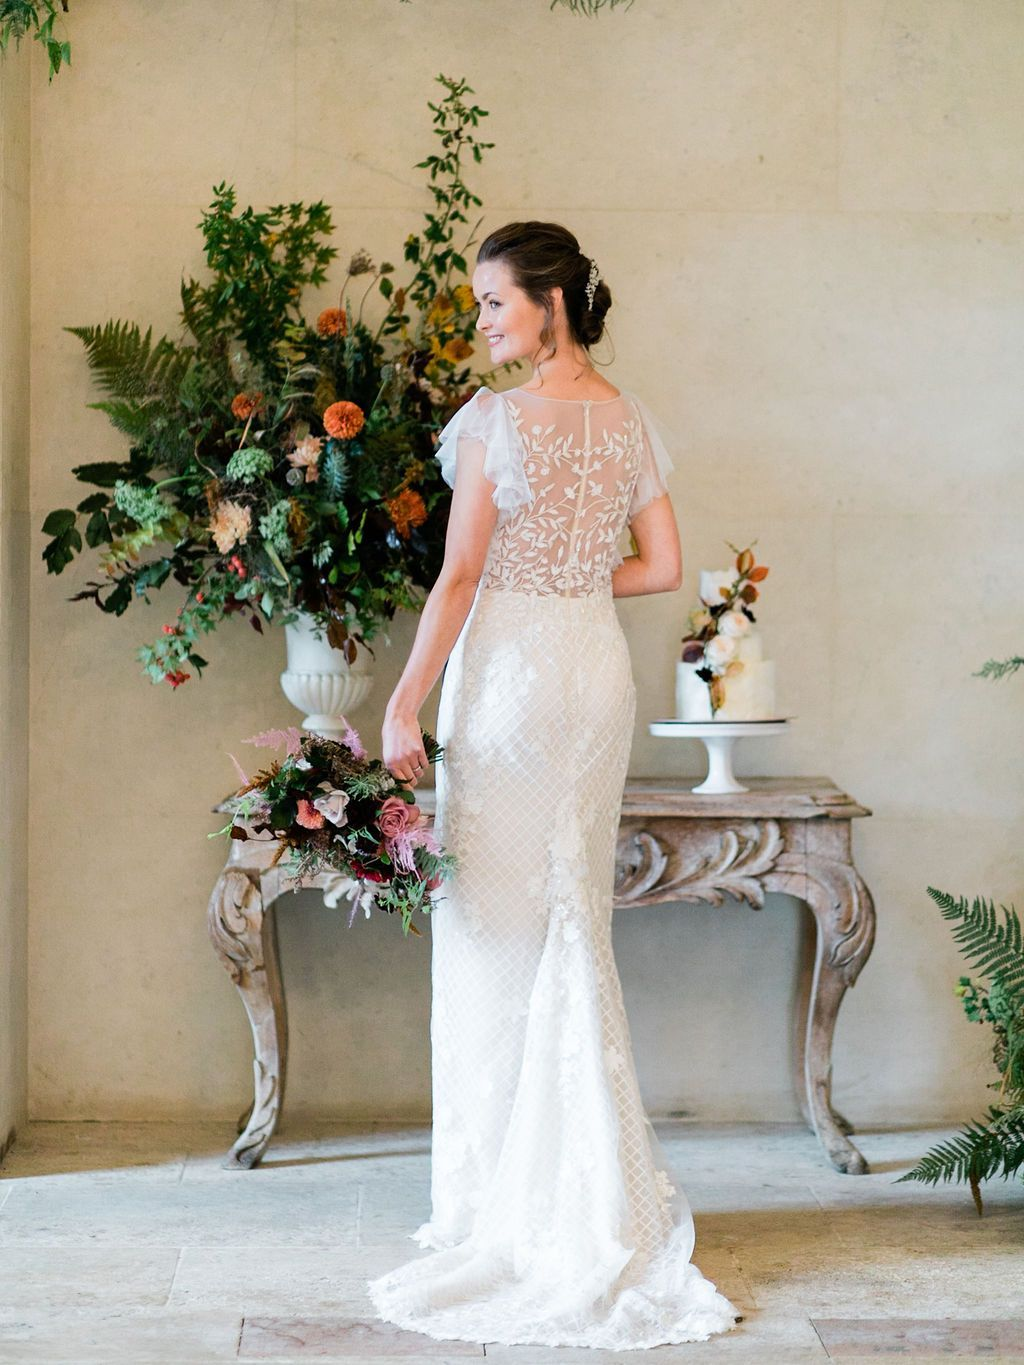 Bridal Styled Shoot at The Lost Orangery -13